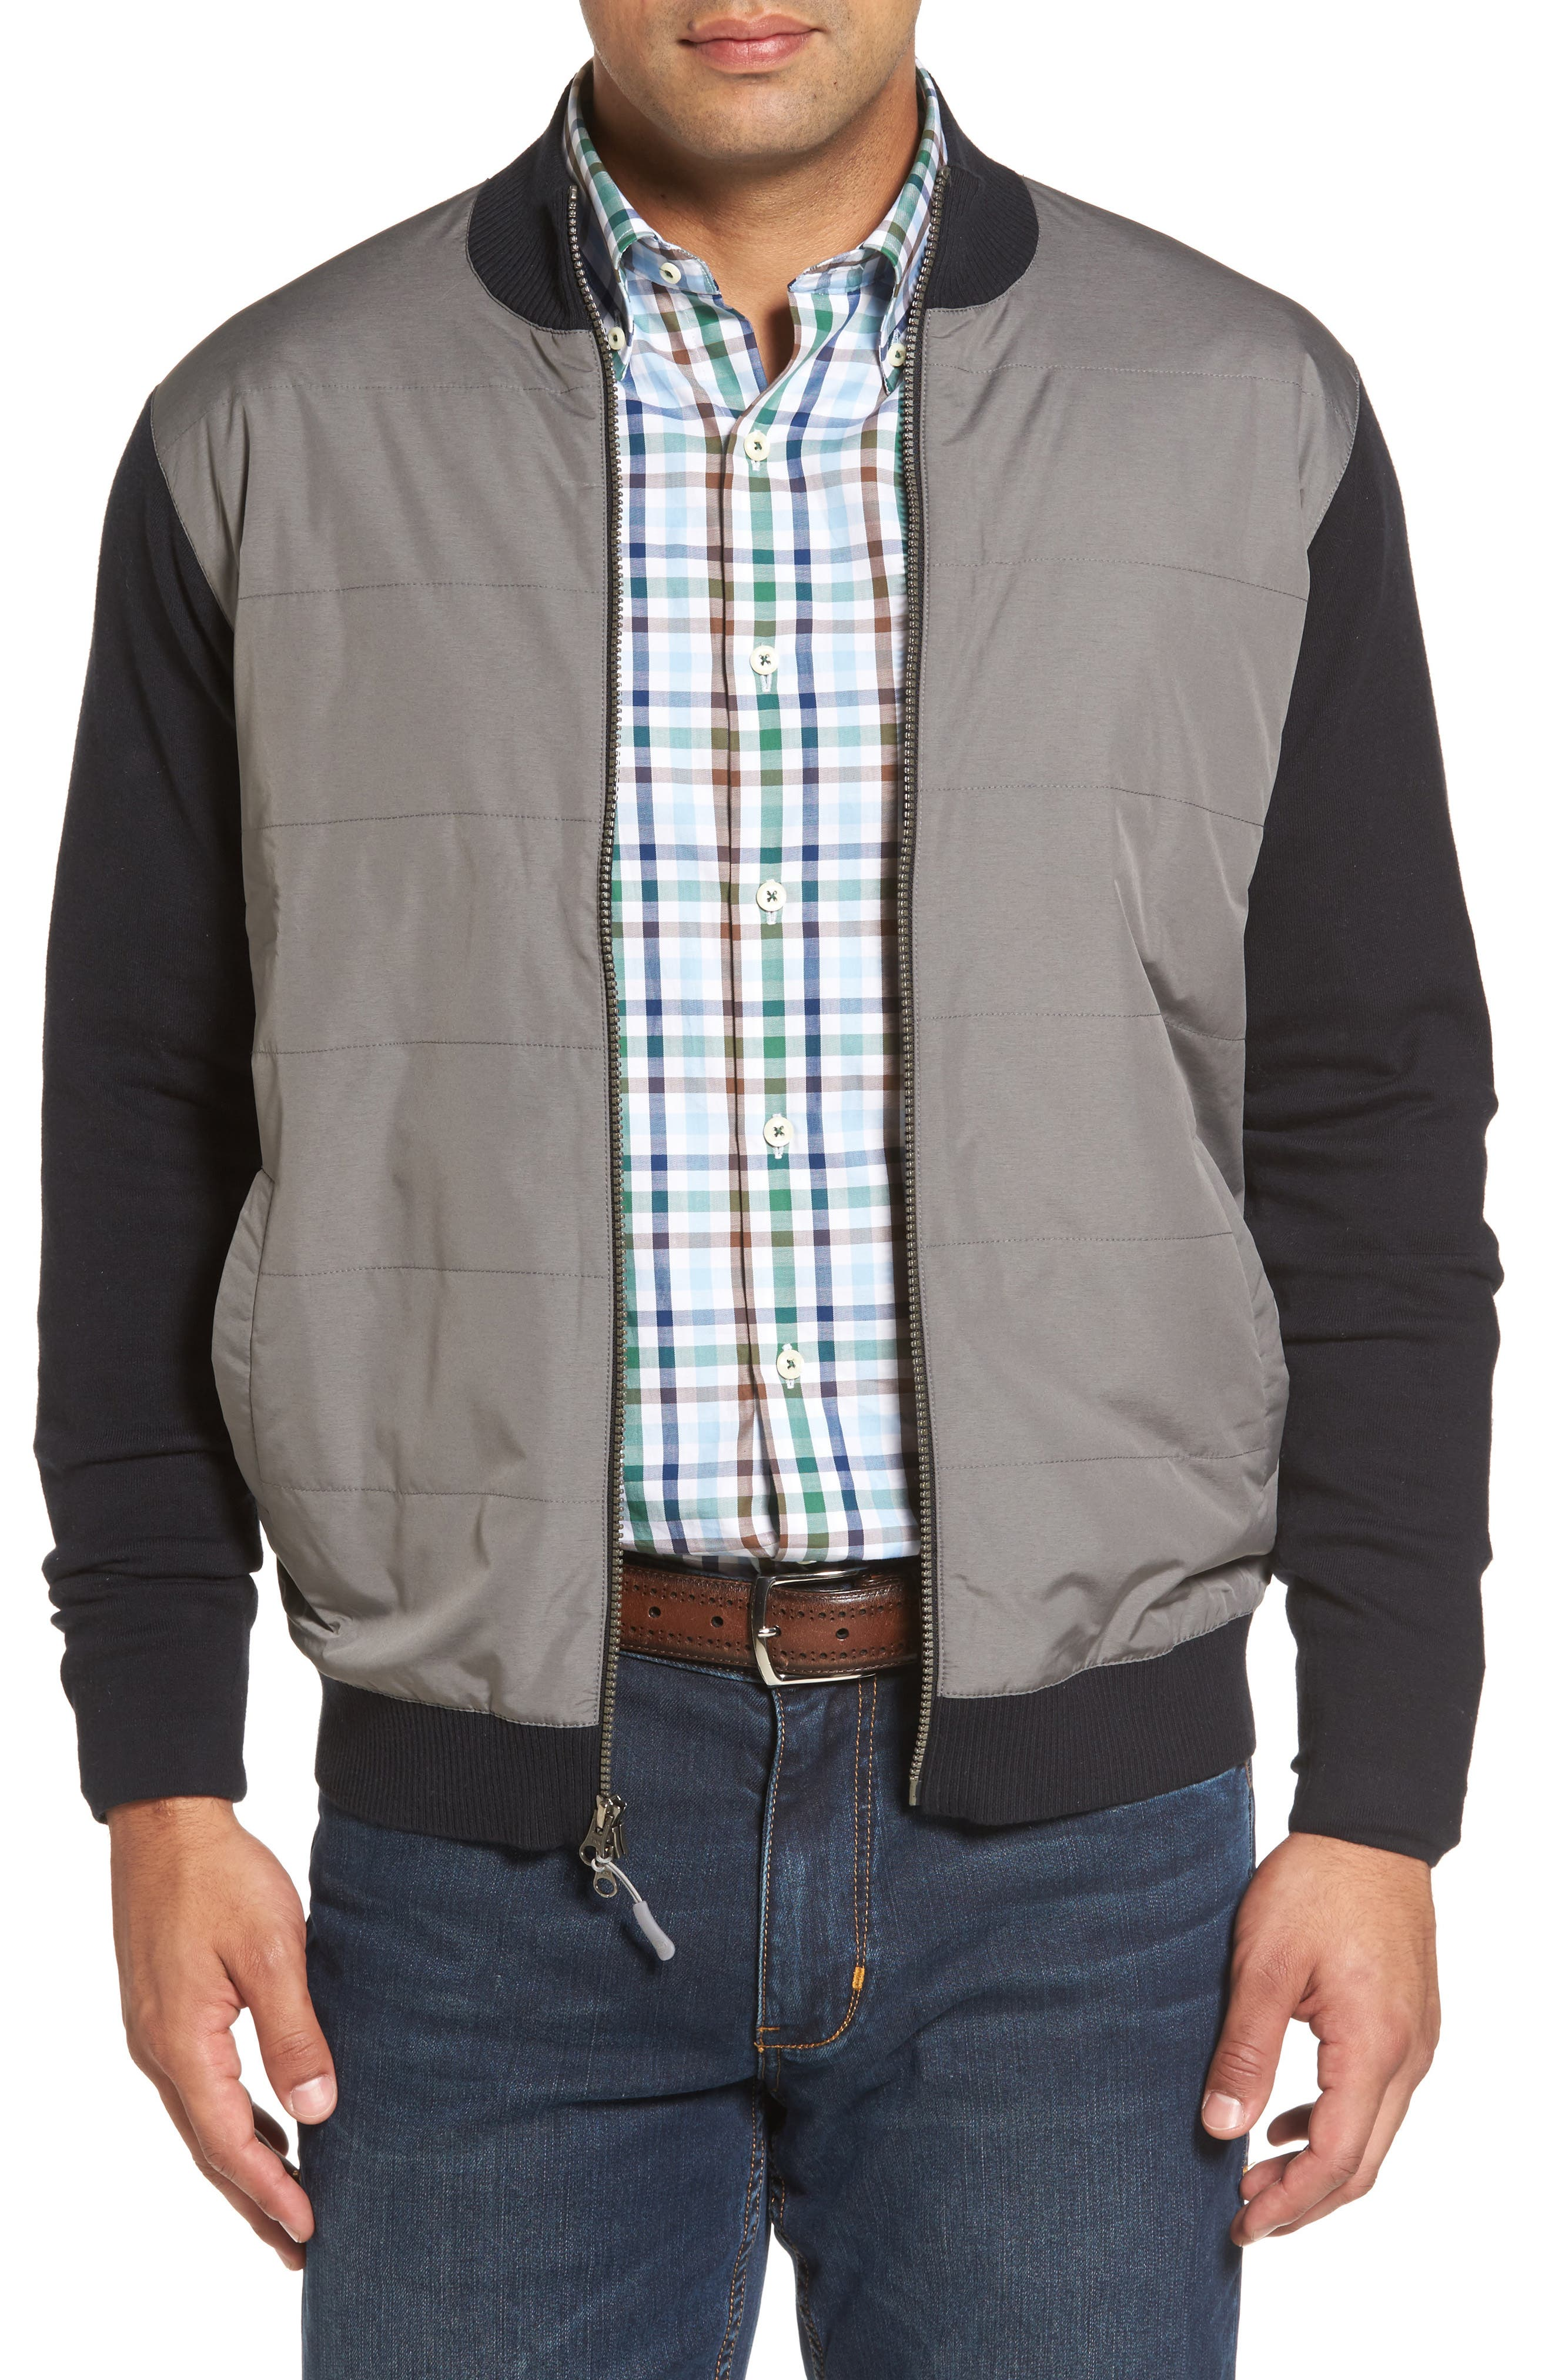 Alternate Image 1 Selected - Peter Millar Patterson Zip Hybrid Jacket